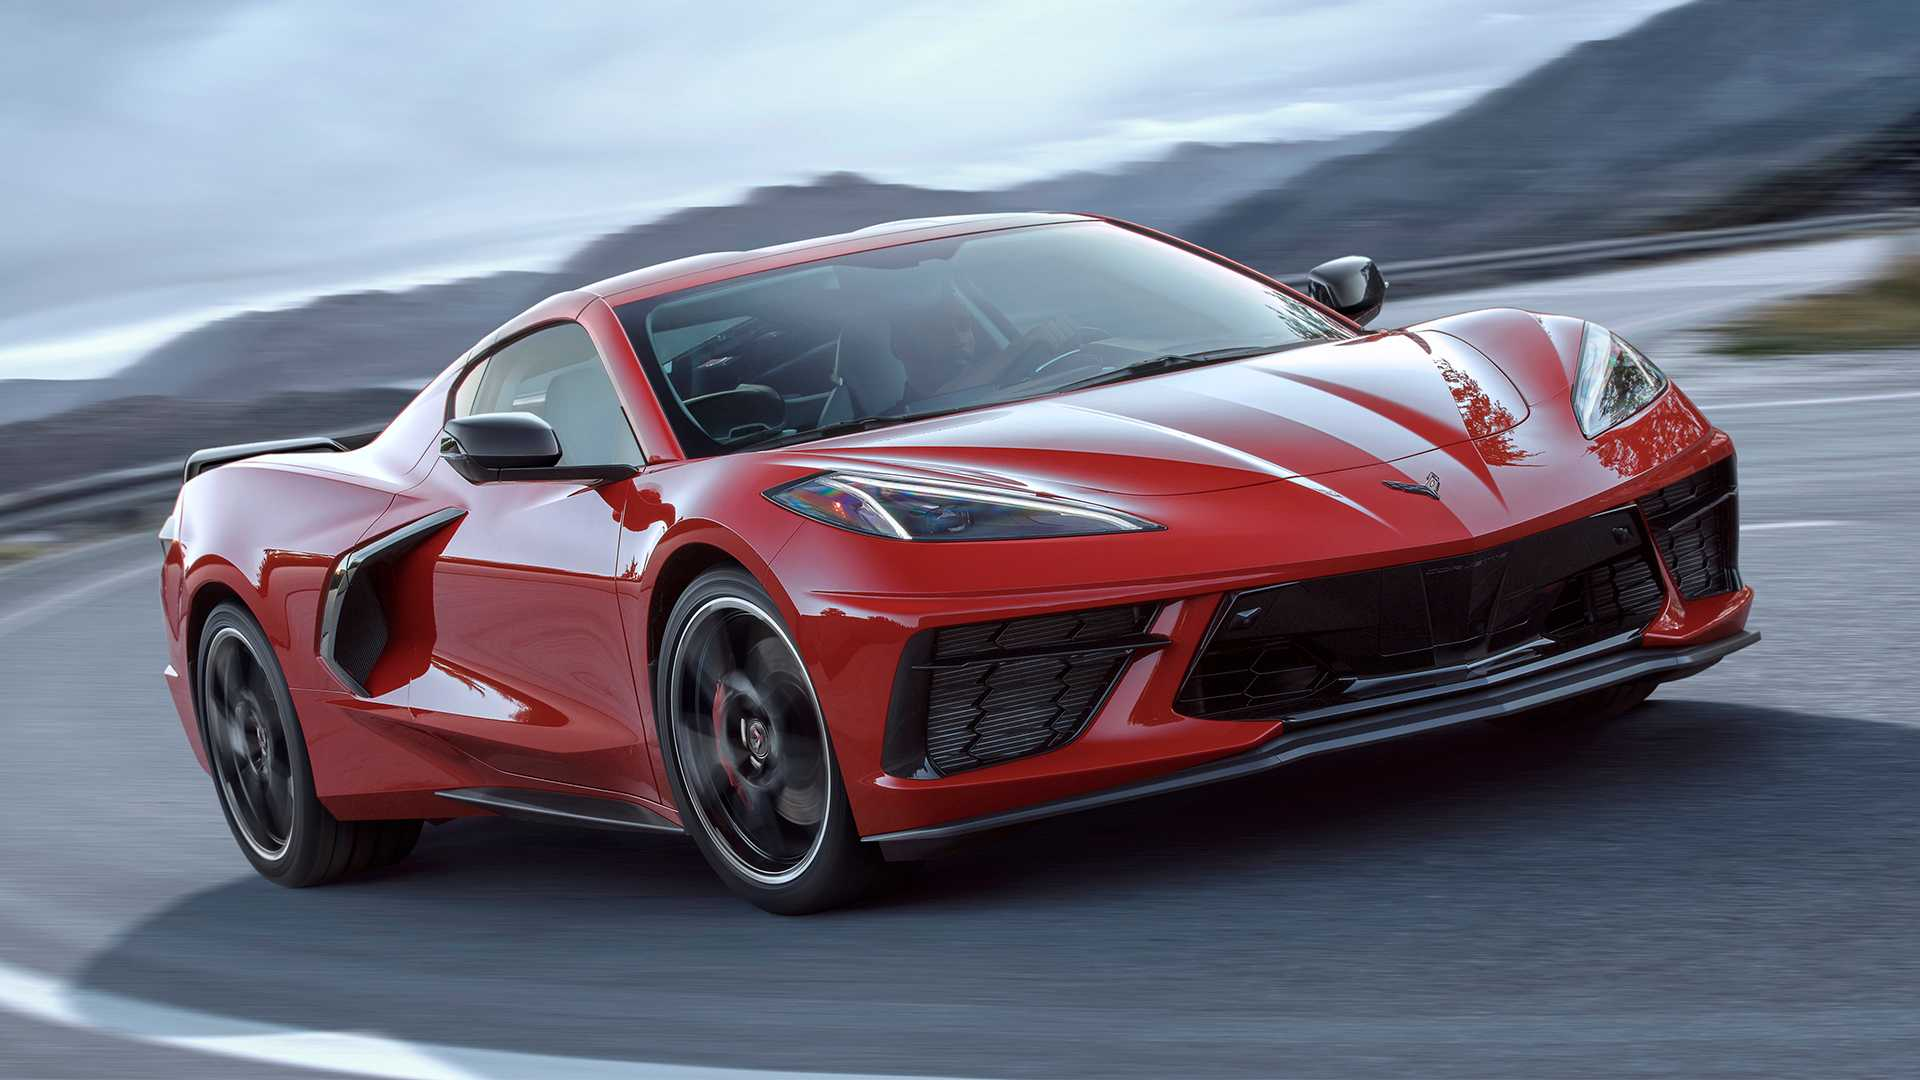 2020-chevy-corvette-stingray-feature.jpg